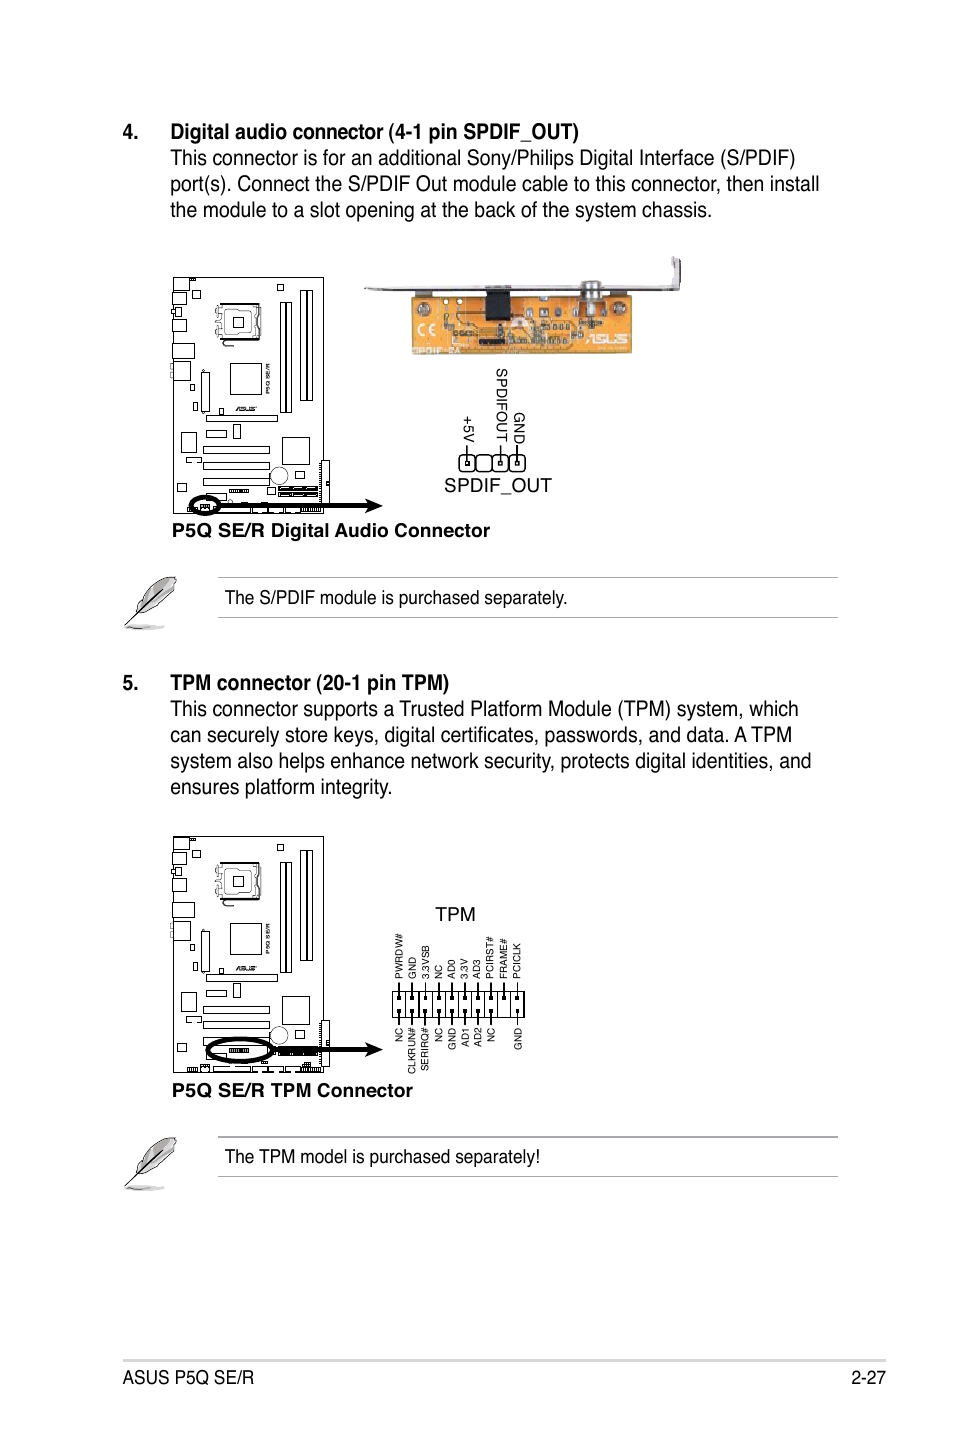 Asus P5q Se R 2 27 The S Pdif Module Is Purchased Separately Digital Audio Platform Connector User Manual Page 51 162